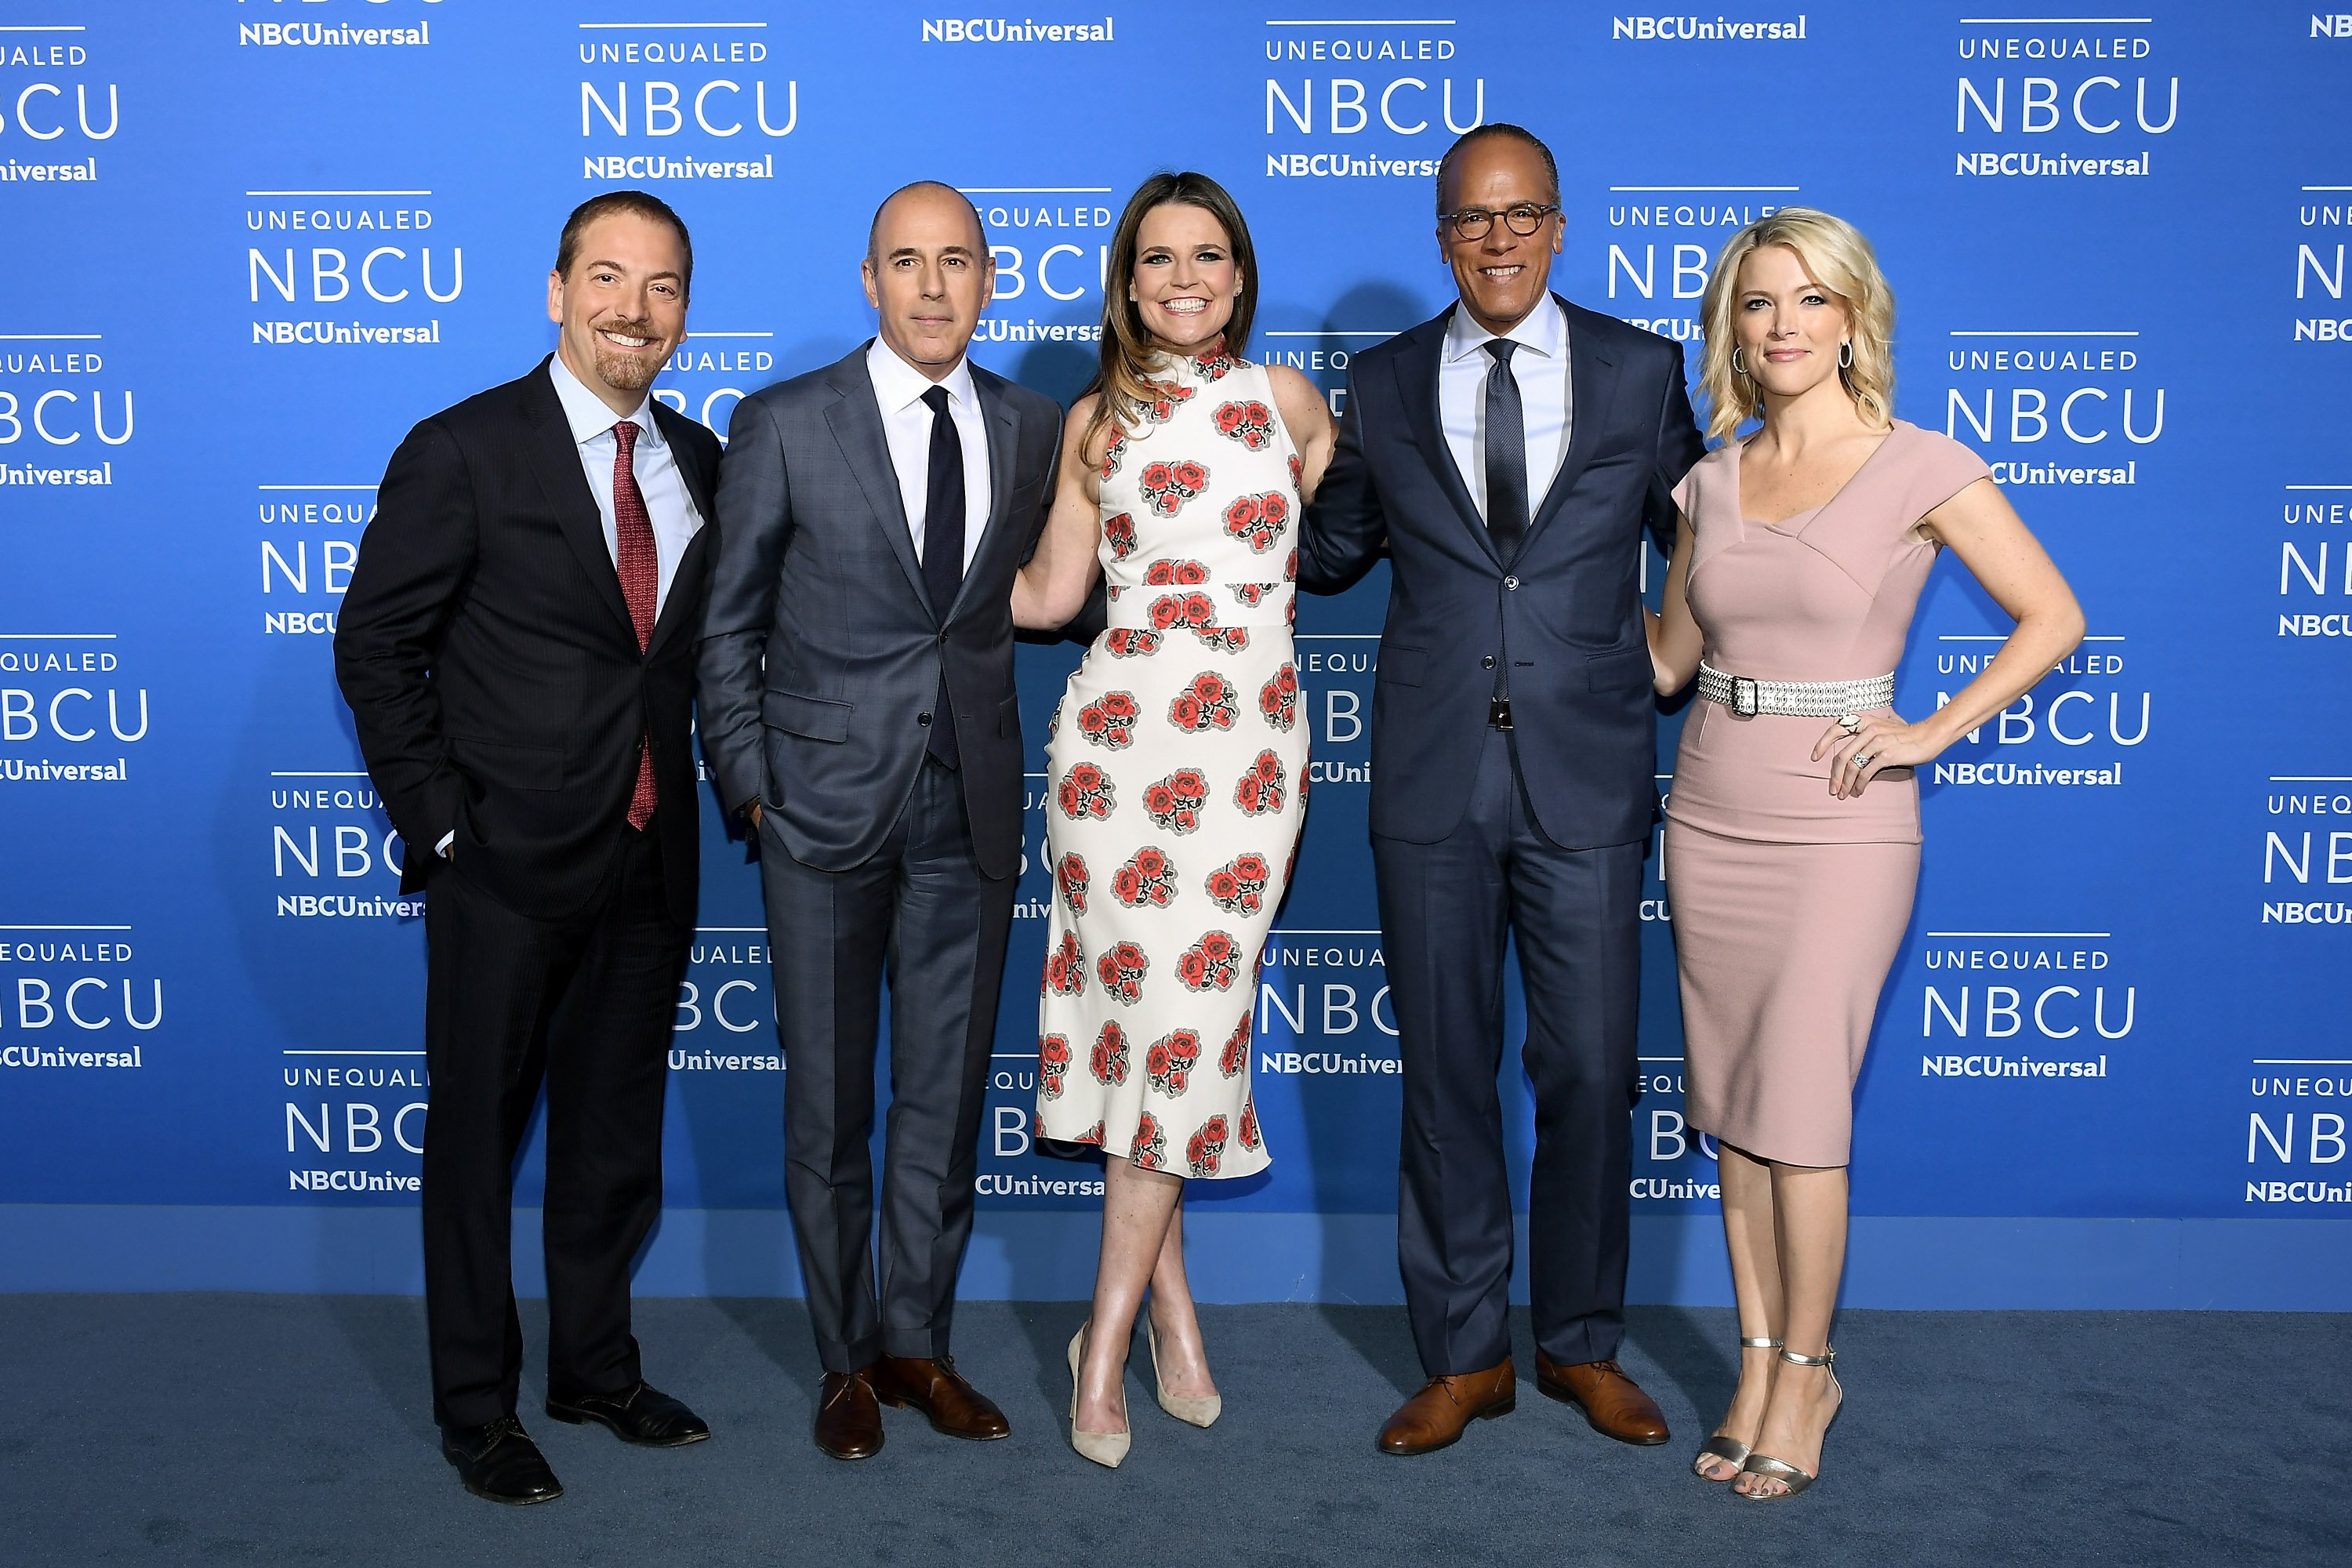 NEW YORK, NY - MAY 15: (L-R) Chuck Todd, Matt Lauer, Savannah Guthrie, Lester Holt, and Megyn Kelly attend the 2017 NBCUniversal Upfront at Radio City Music Hall on May 15, 2017 in New York City. (Photo by Dia Dipasupil/Getty Images)